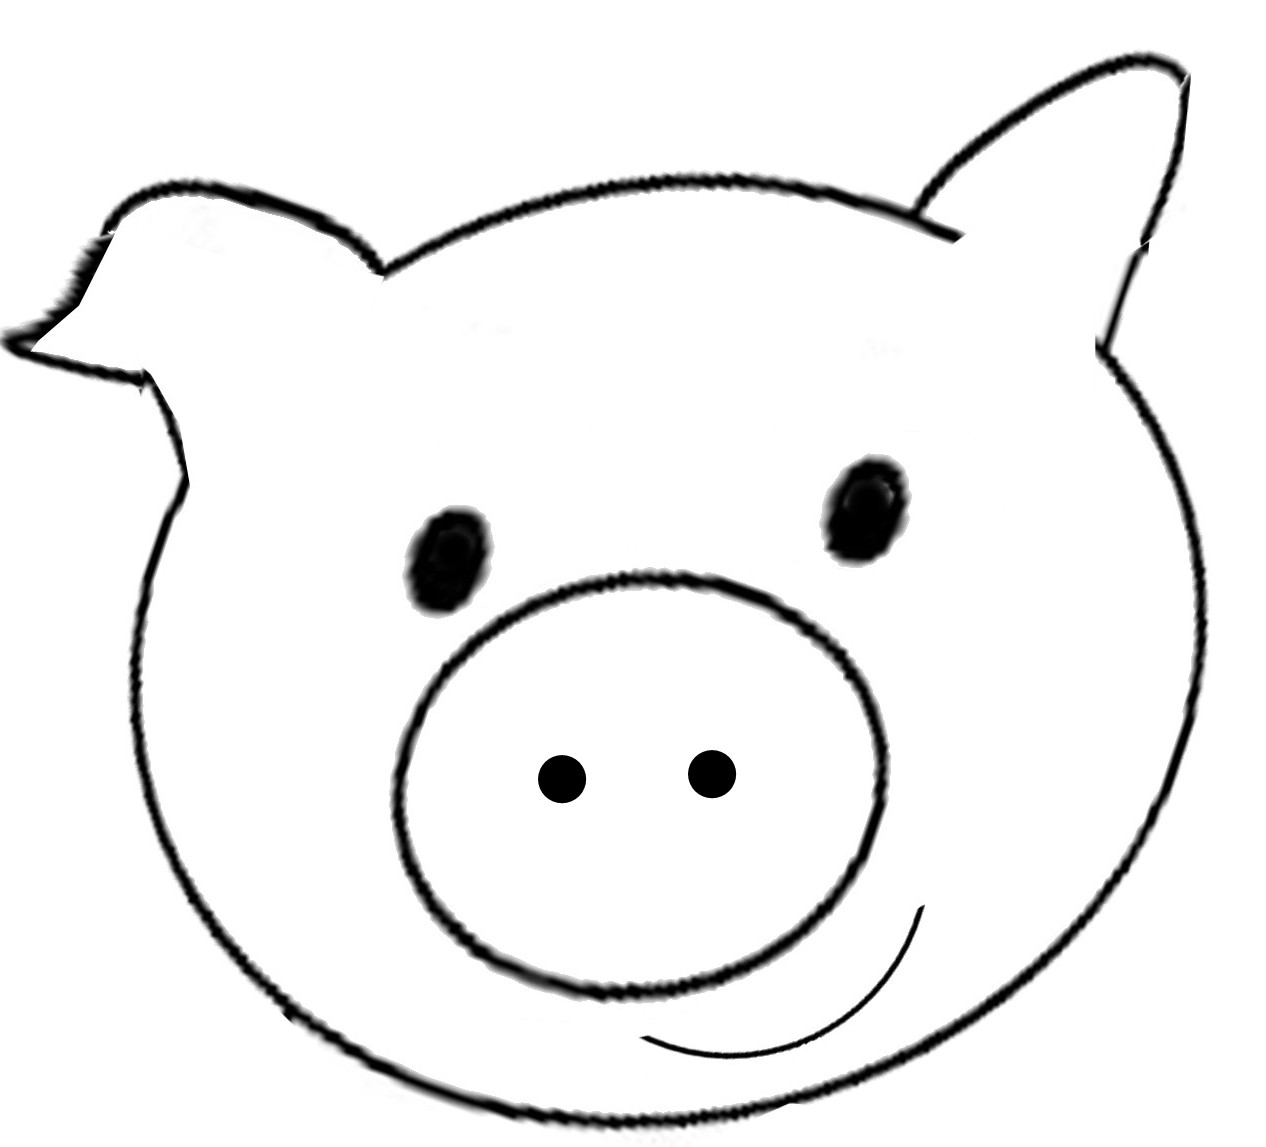 Pig Face Coloring Pages For Kids Cooloringcom